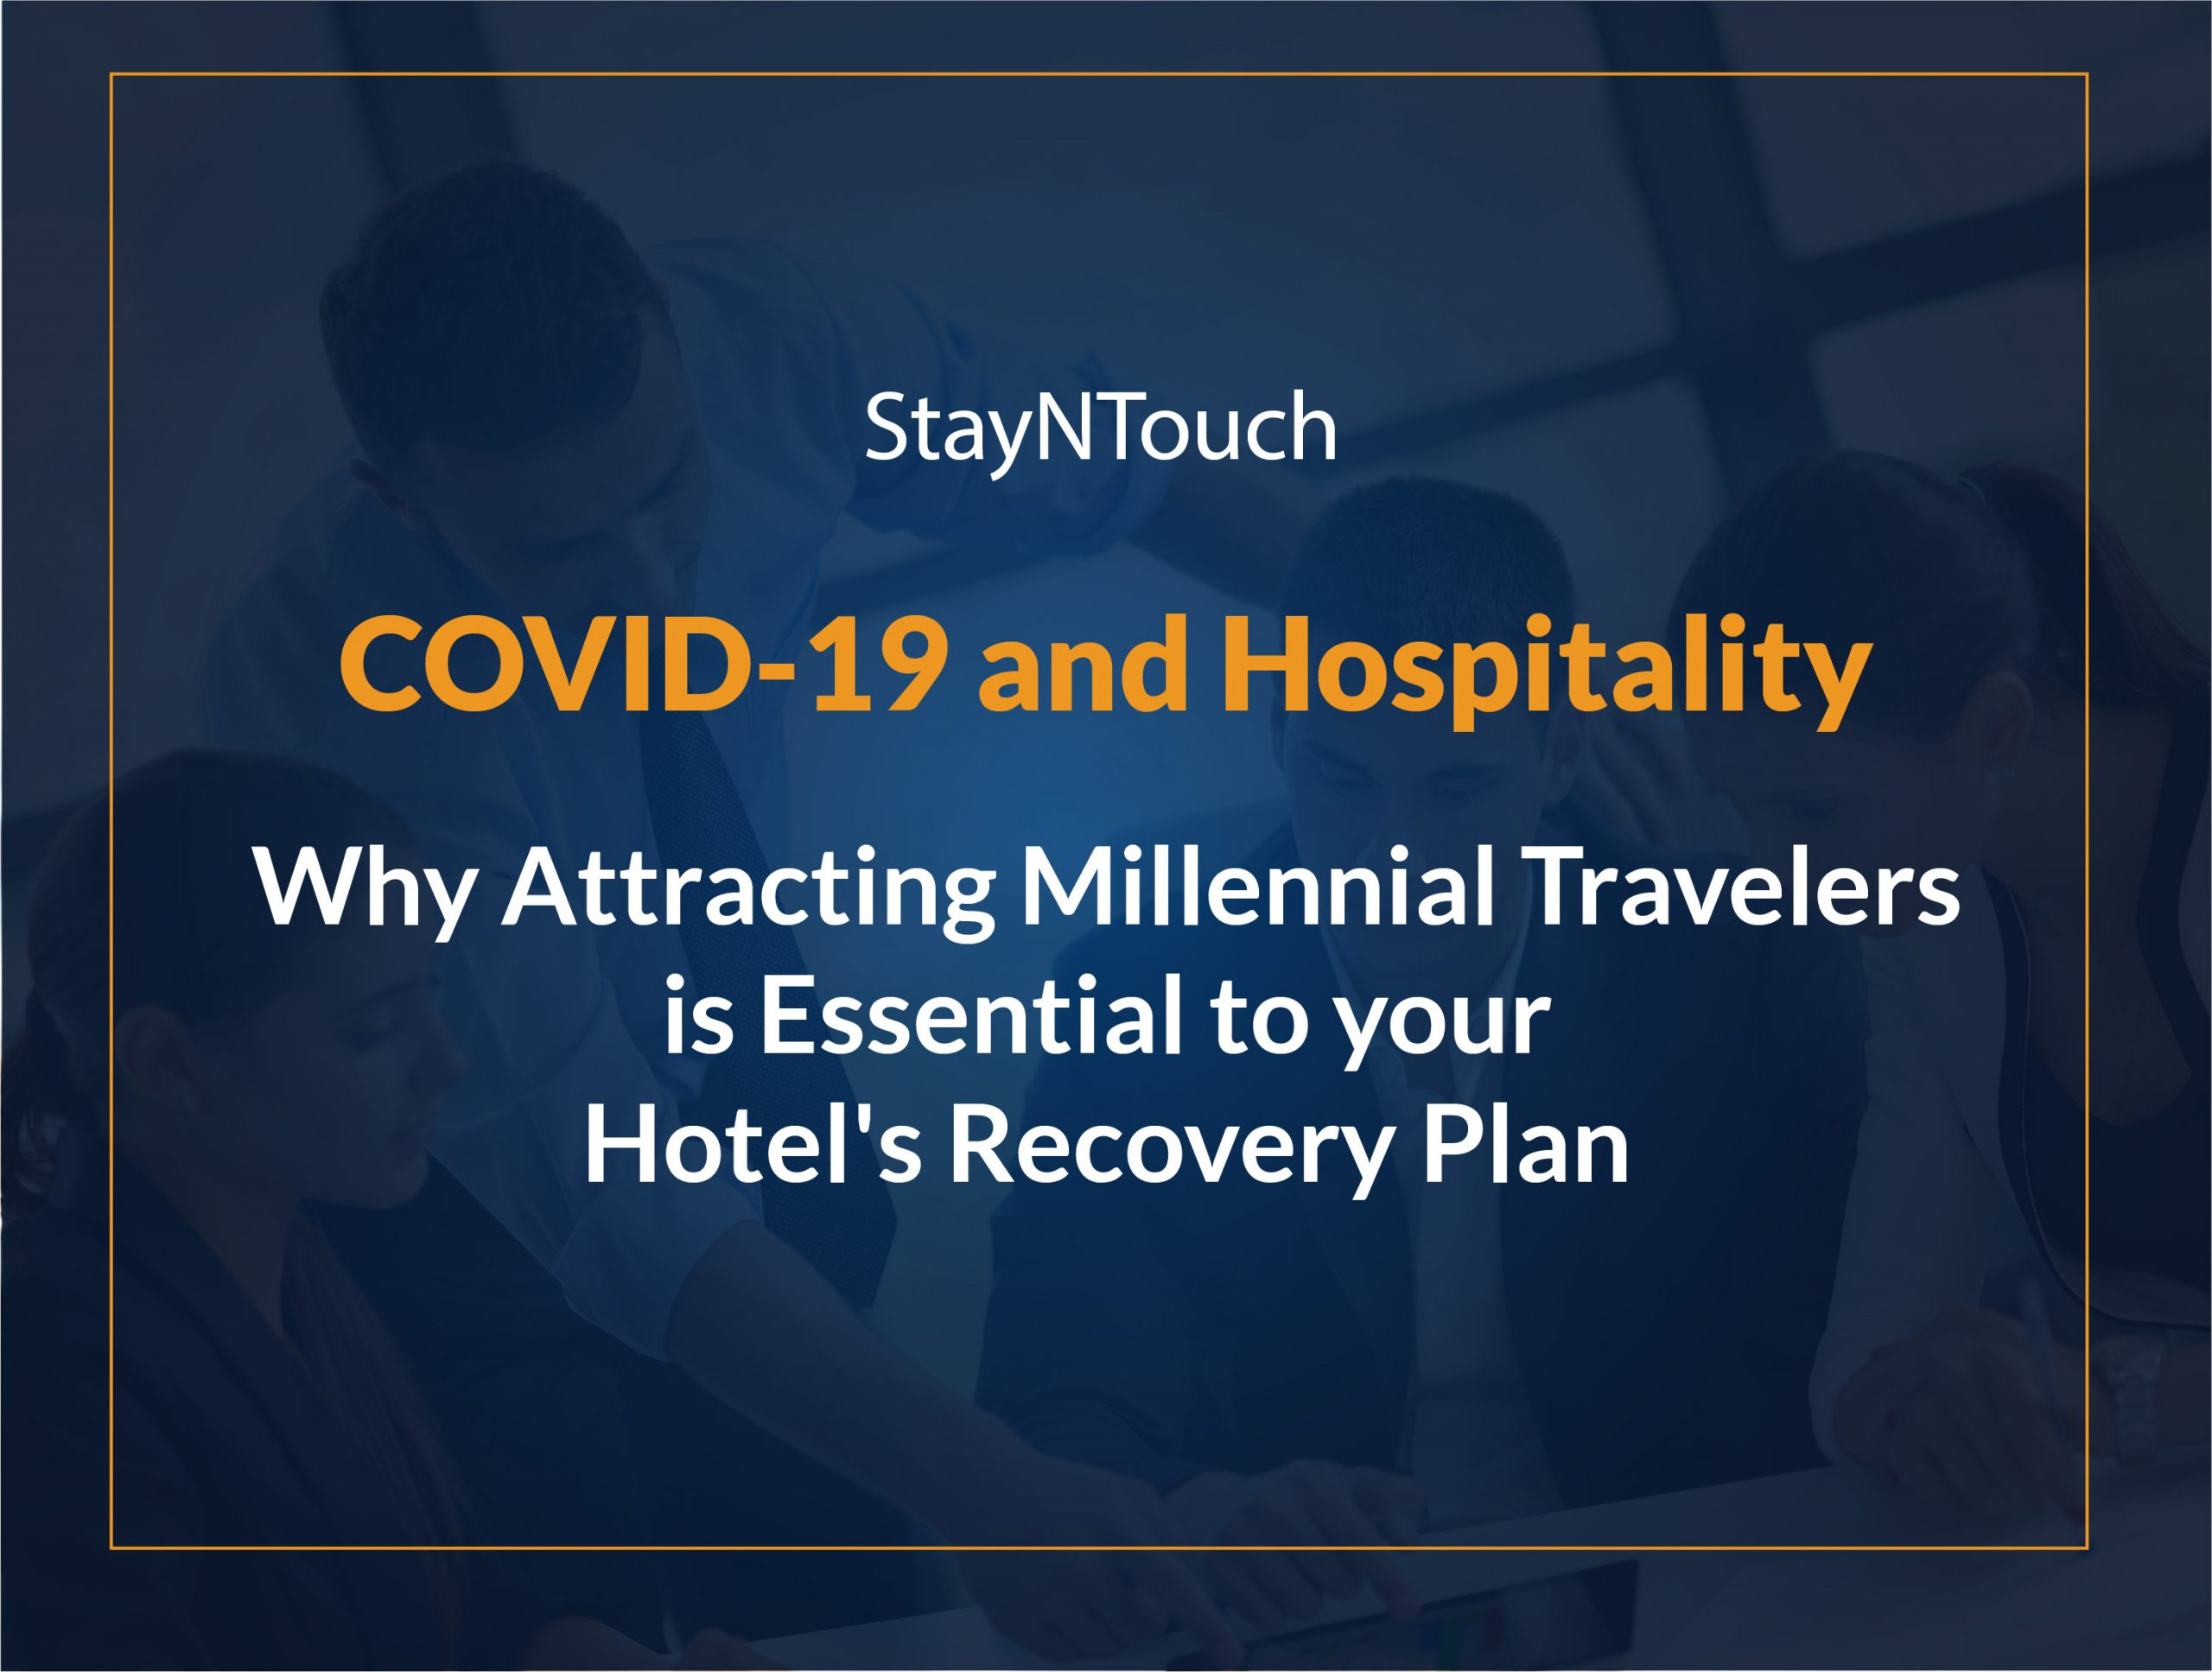 Covid-19 hotel Recovery Plan